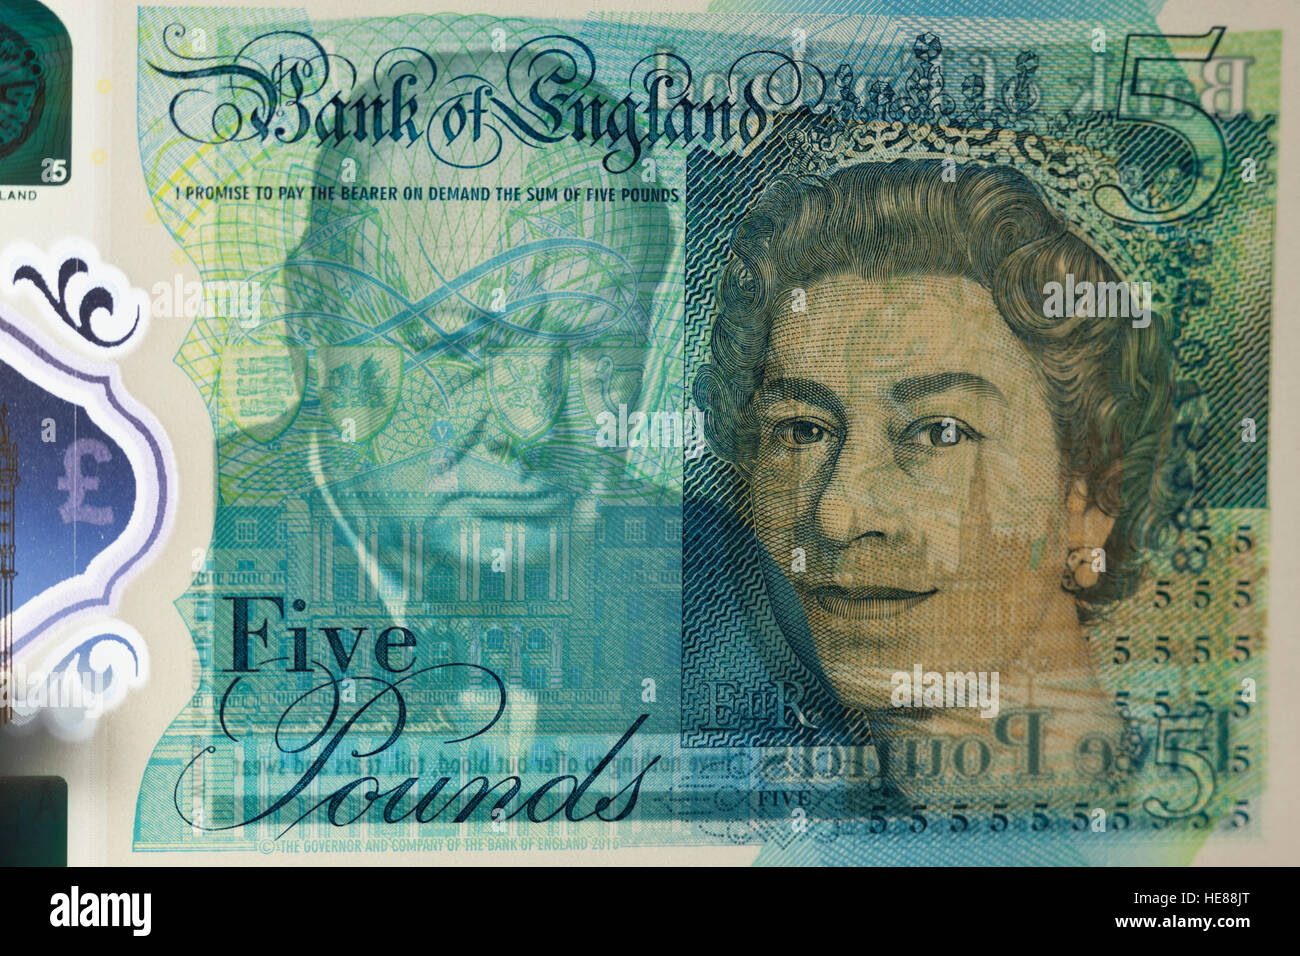 New polymer five pound note with Winston Churchill - Stock Image